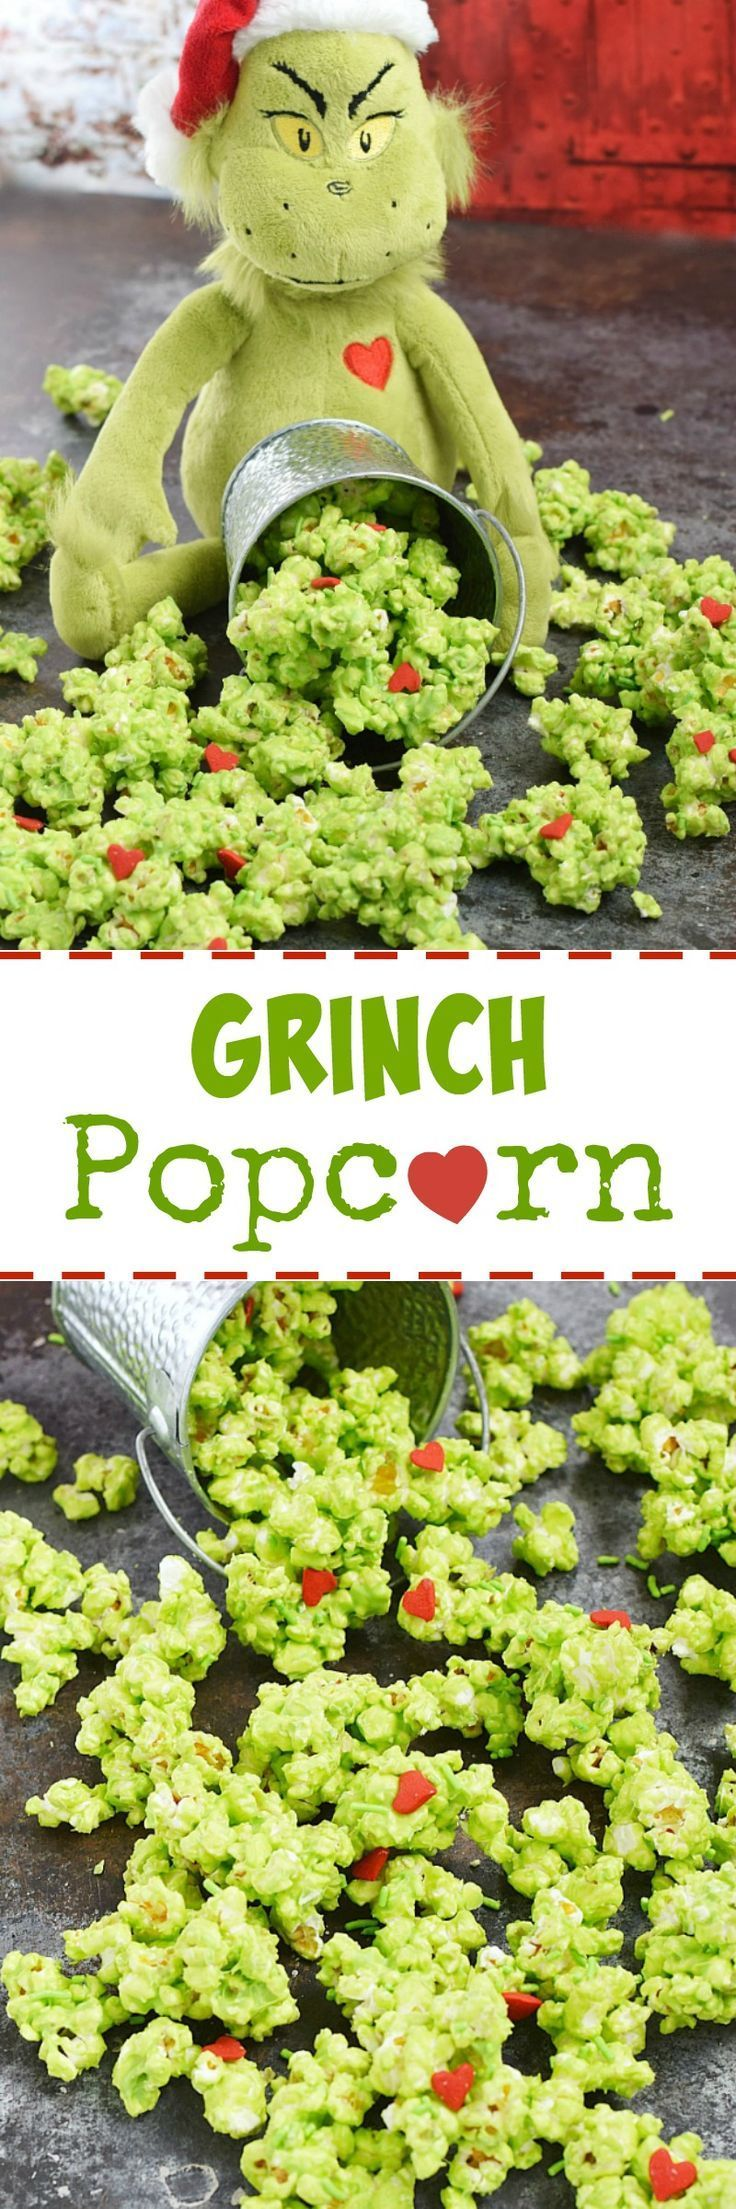 This Grinch Popcorn is so delicious that you might find it hard to share, but you will because you are not a Grinch | http://cookingwithcurls.com